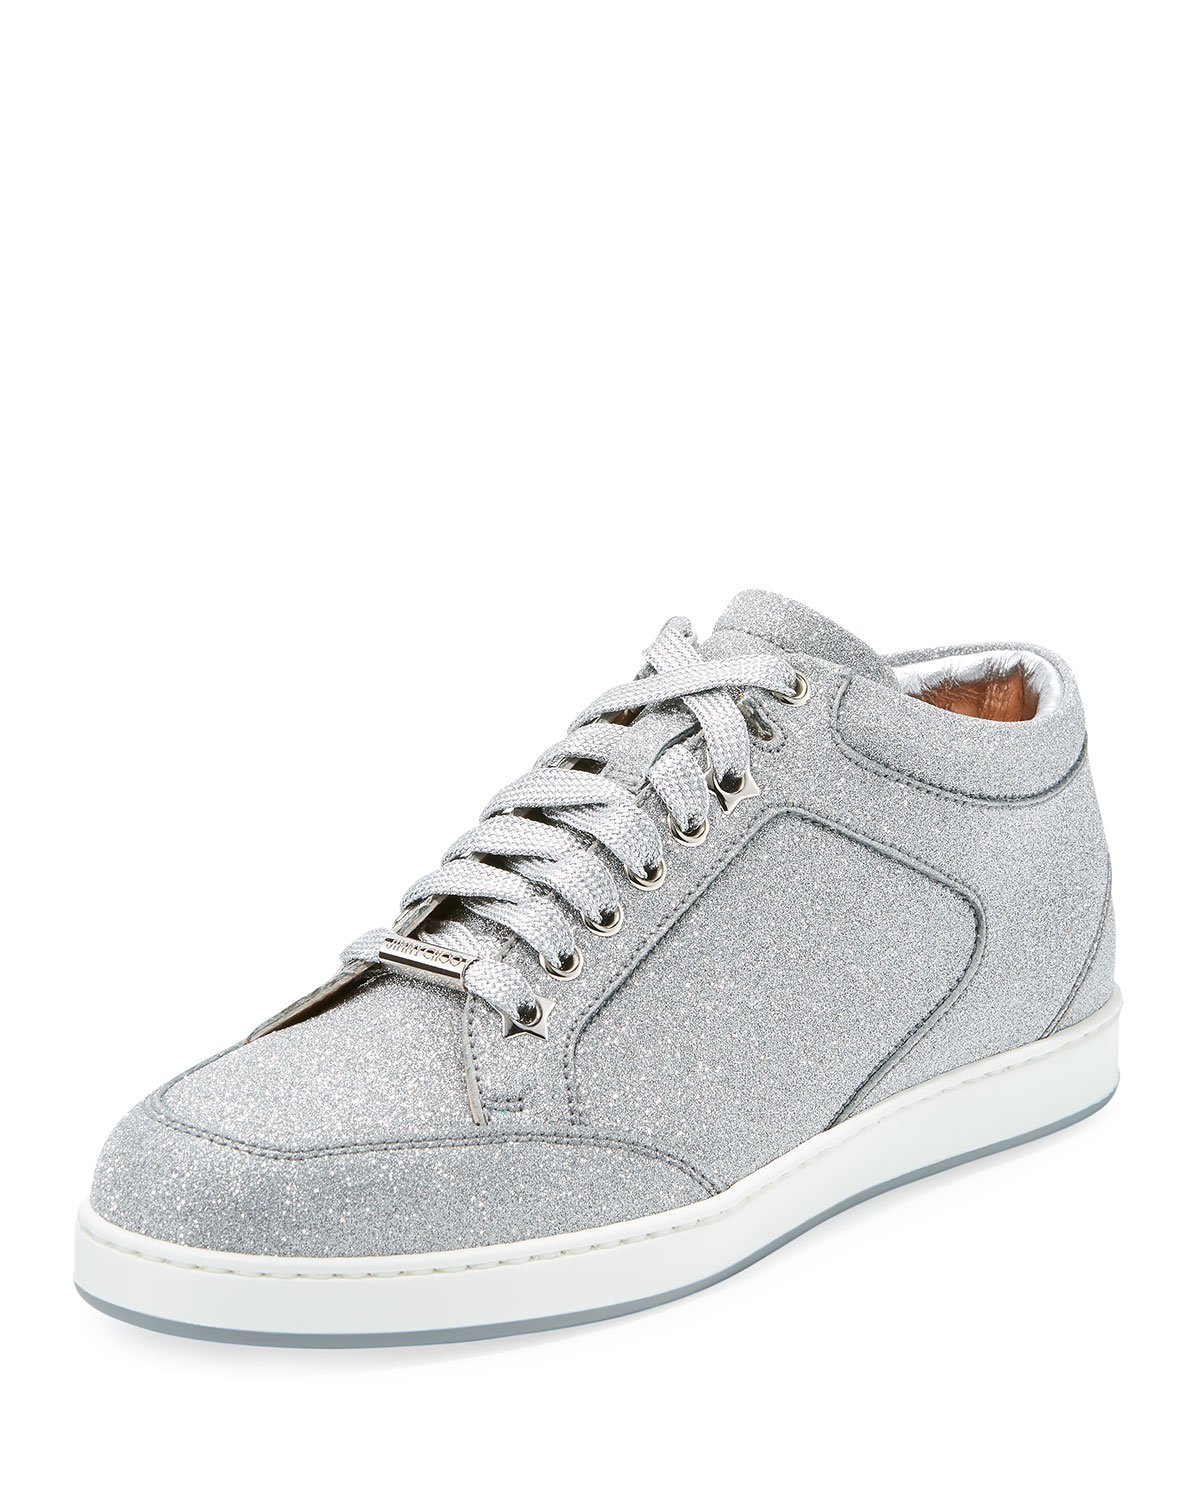 059584680a4b Jimmy Choo Miami Glitter Leather Low-Top Sneakers | Neiman Marcus